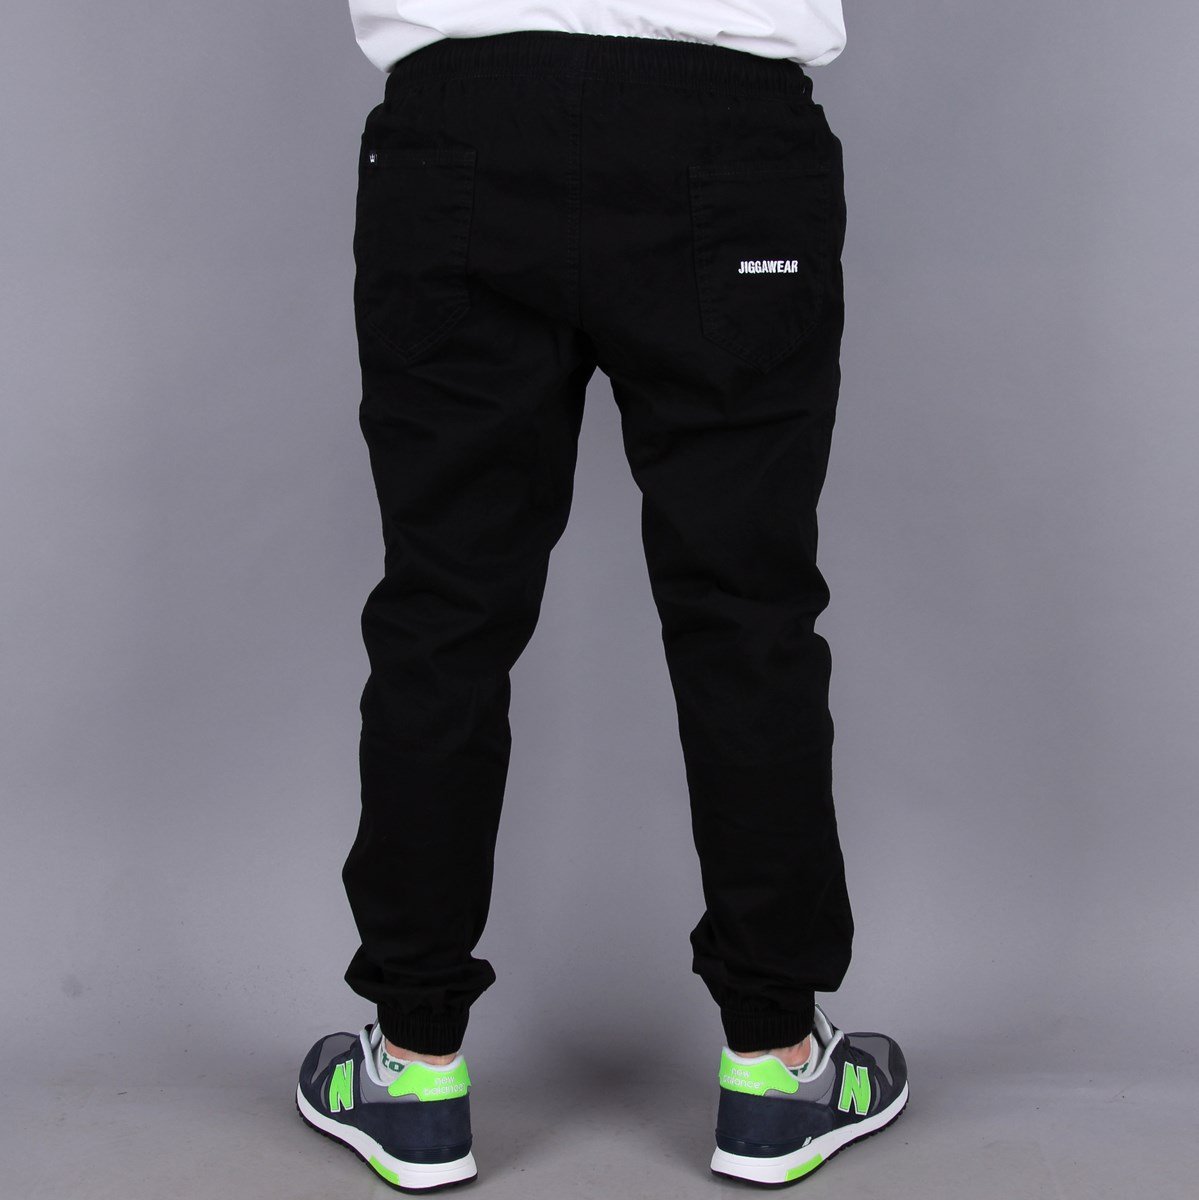 Joggery Jigga Wear Pants Black